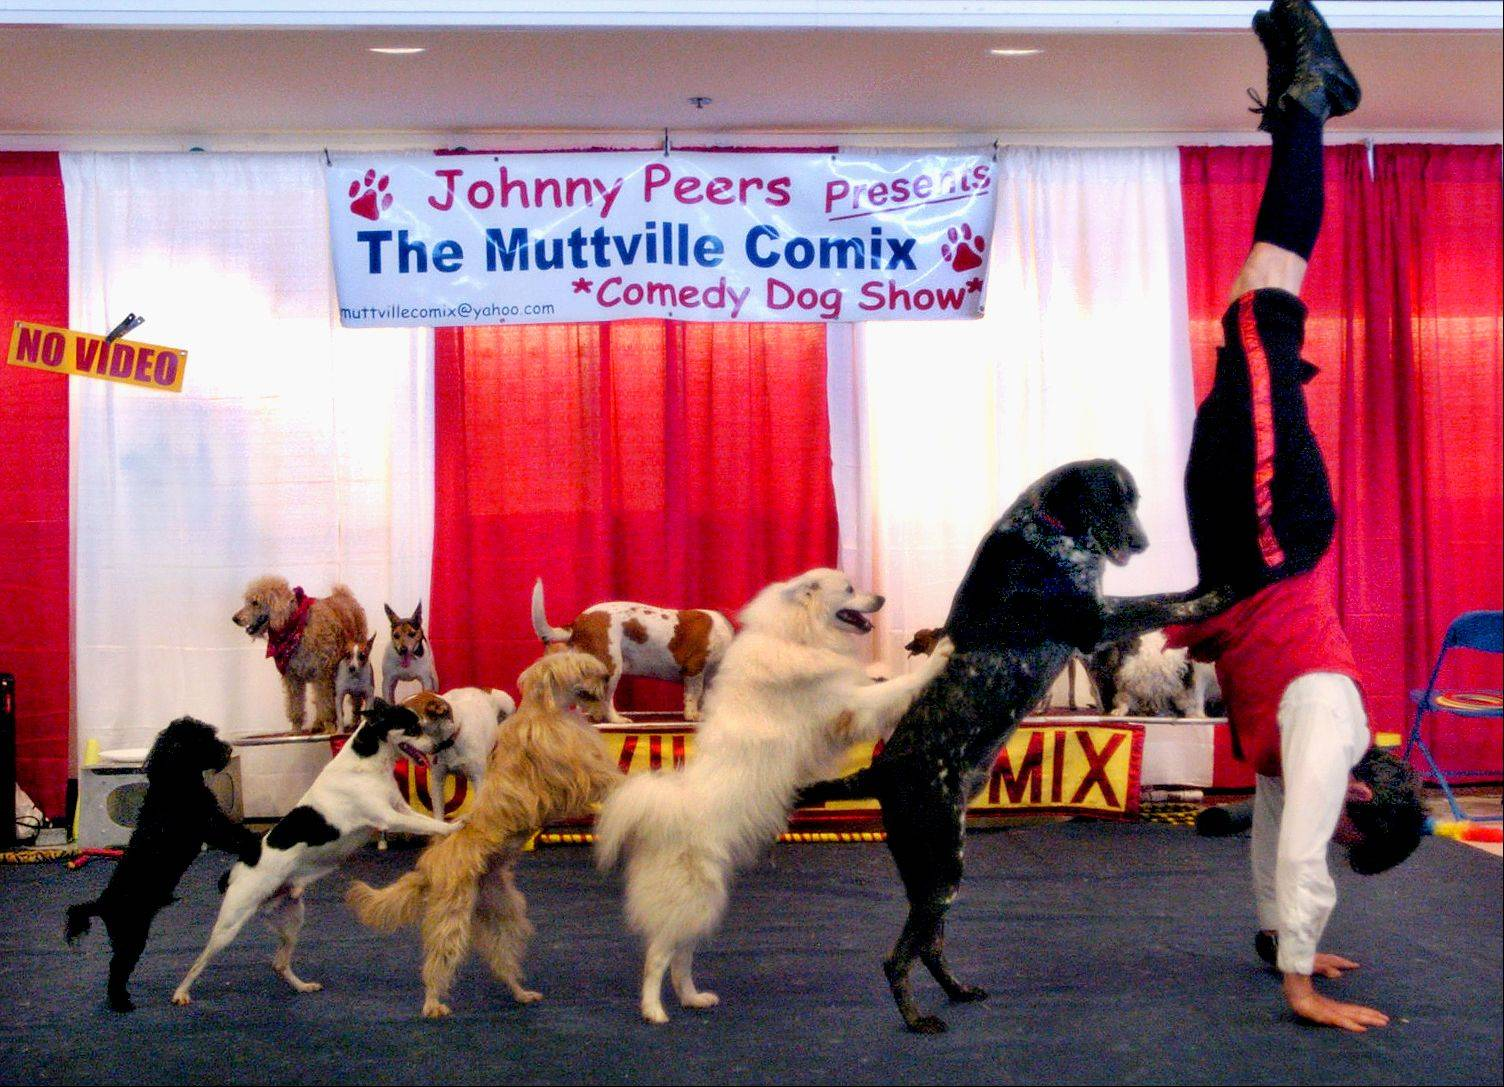 The Pet Expo always has a couple amazing animal acts -- last year it was the Johnny Peers and his Muttville Comix Comedy Dog Show, here forming a conga line.